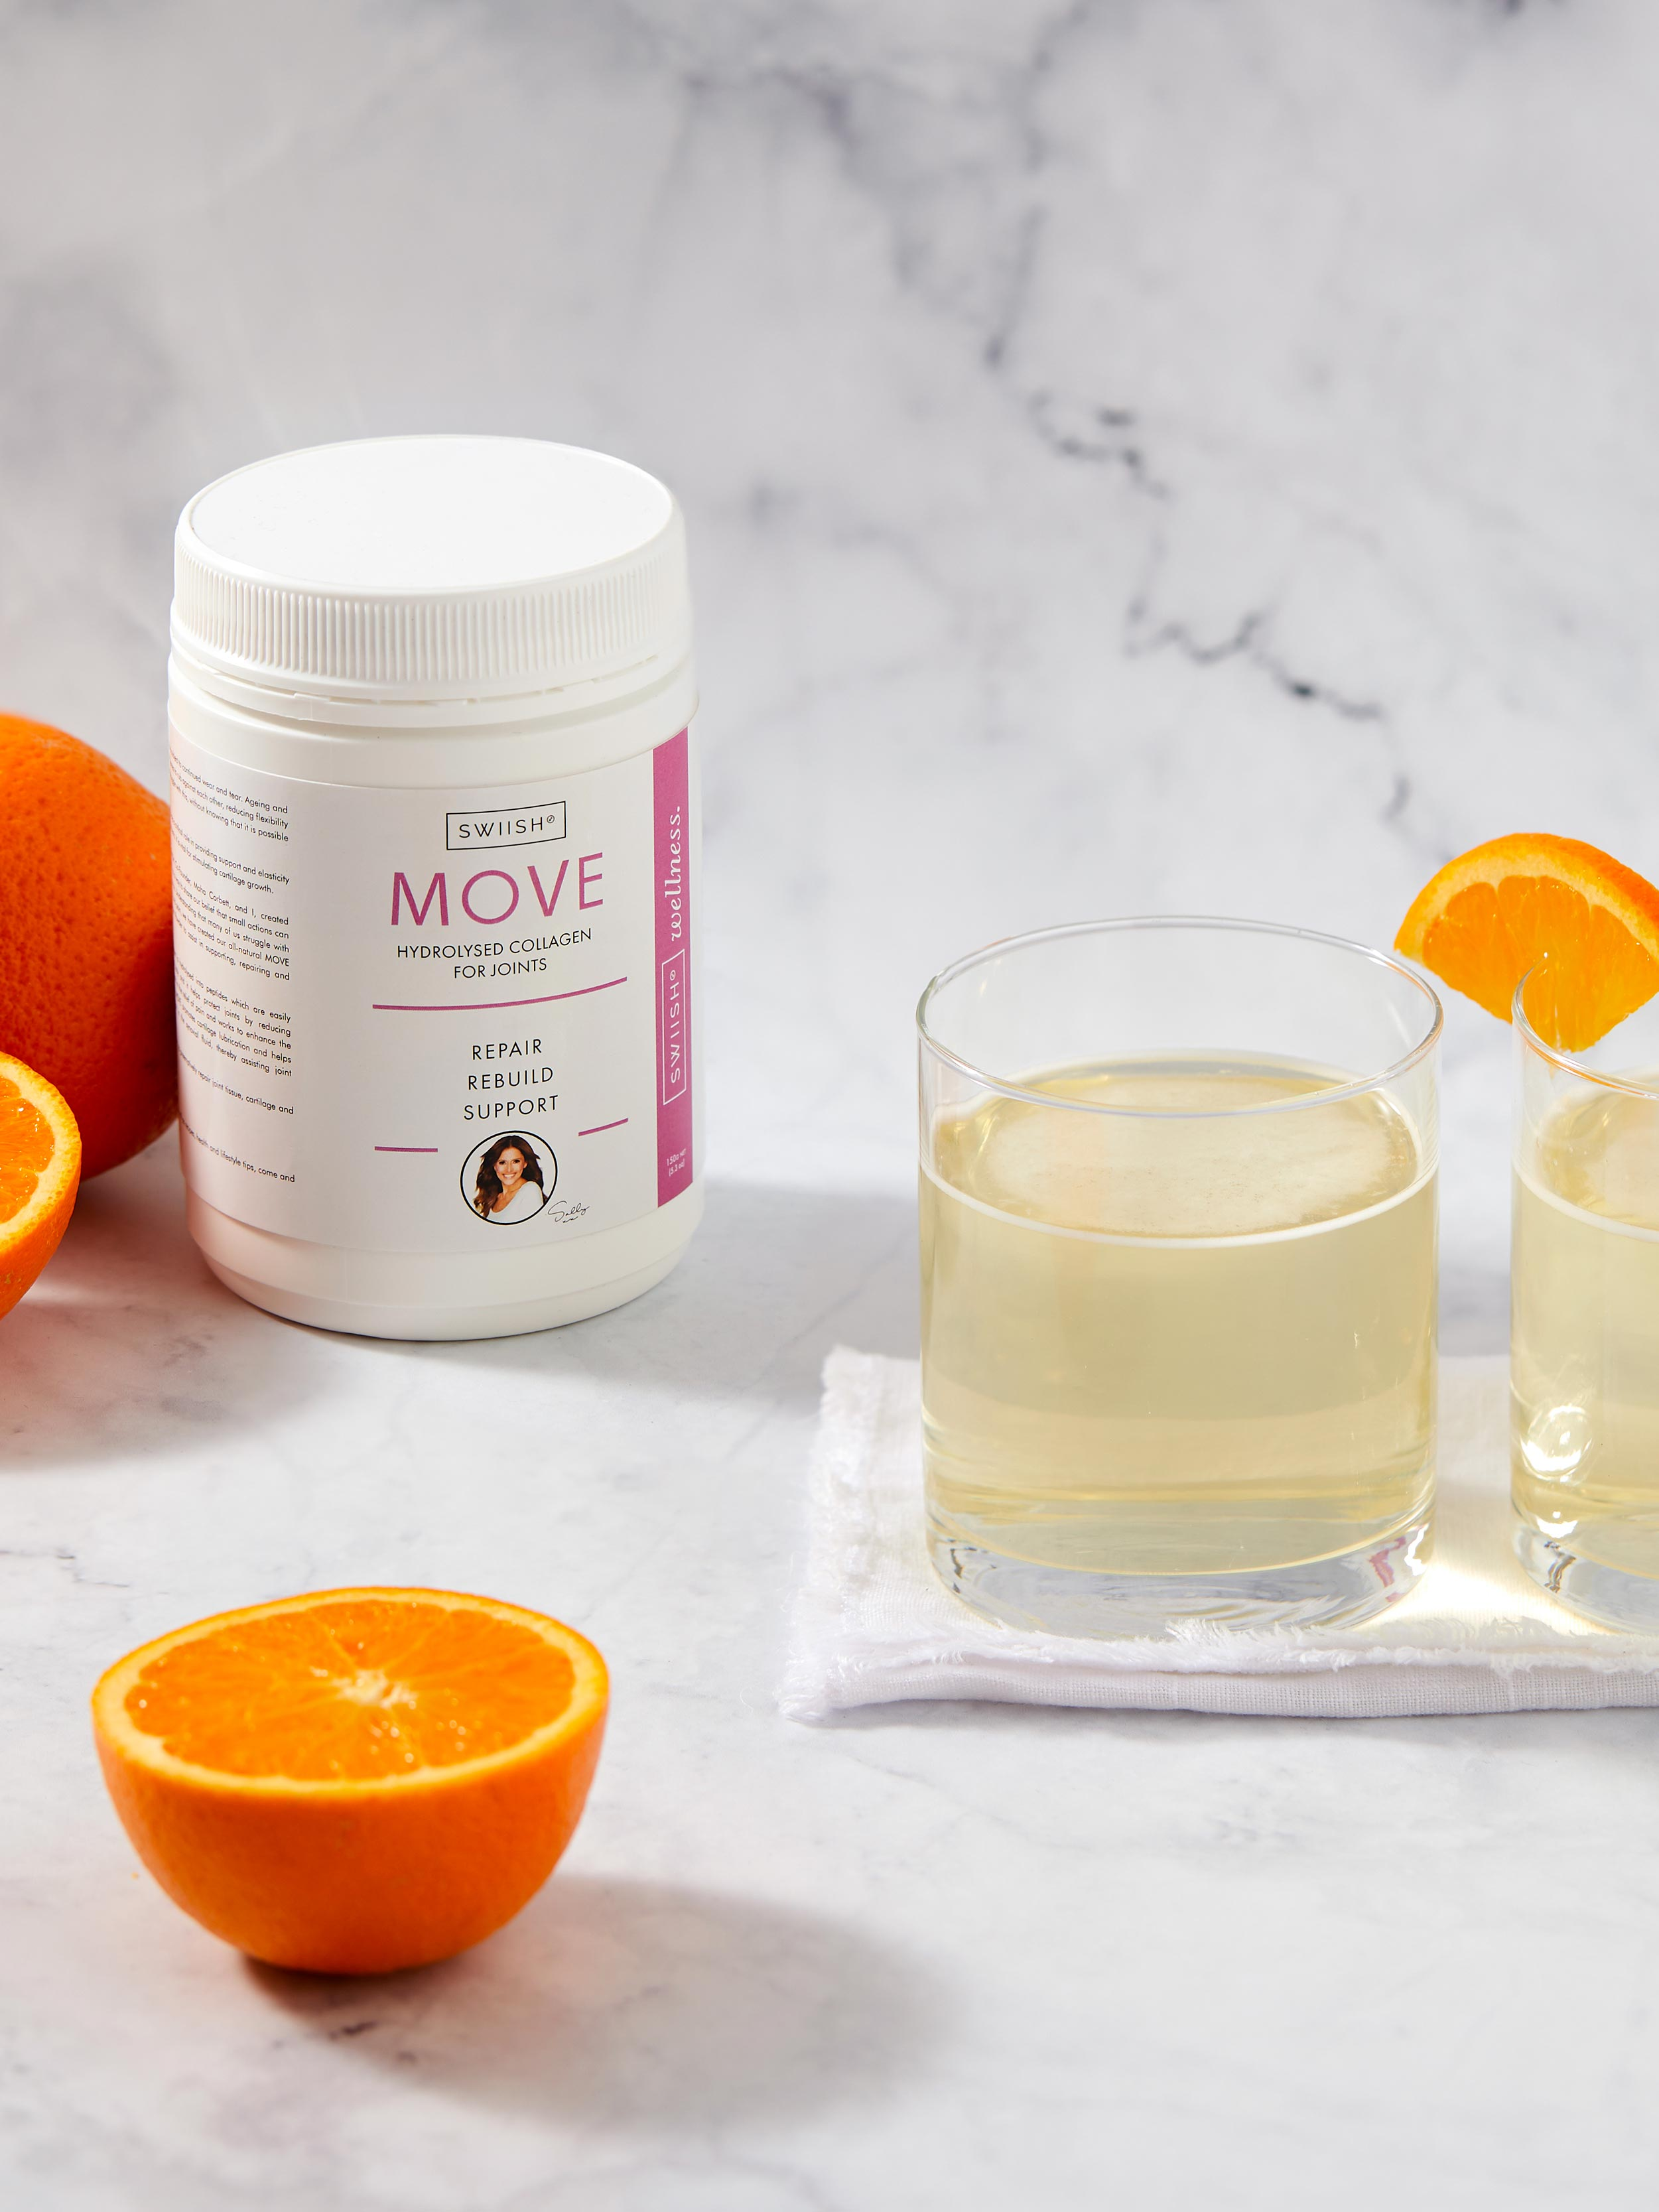 MOVE HYDROLYSED COLLAGEN FOR JOINTS